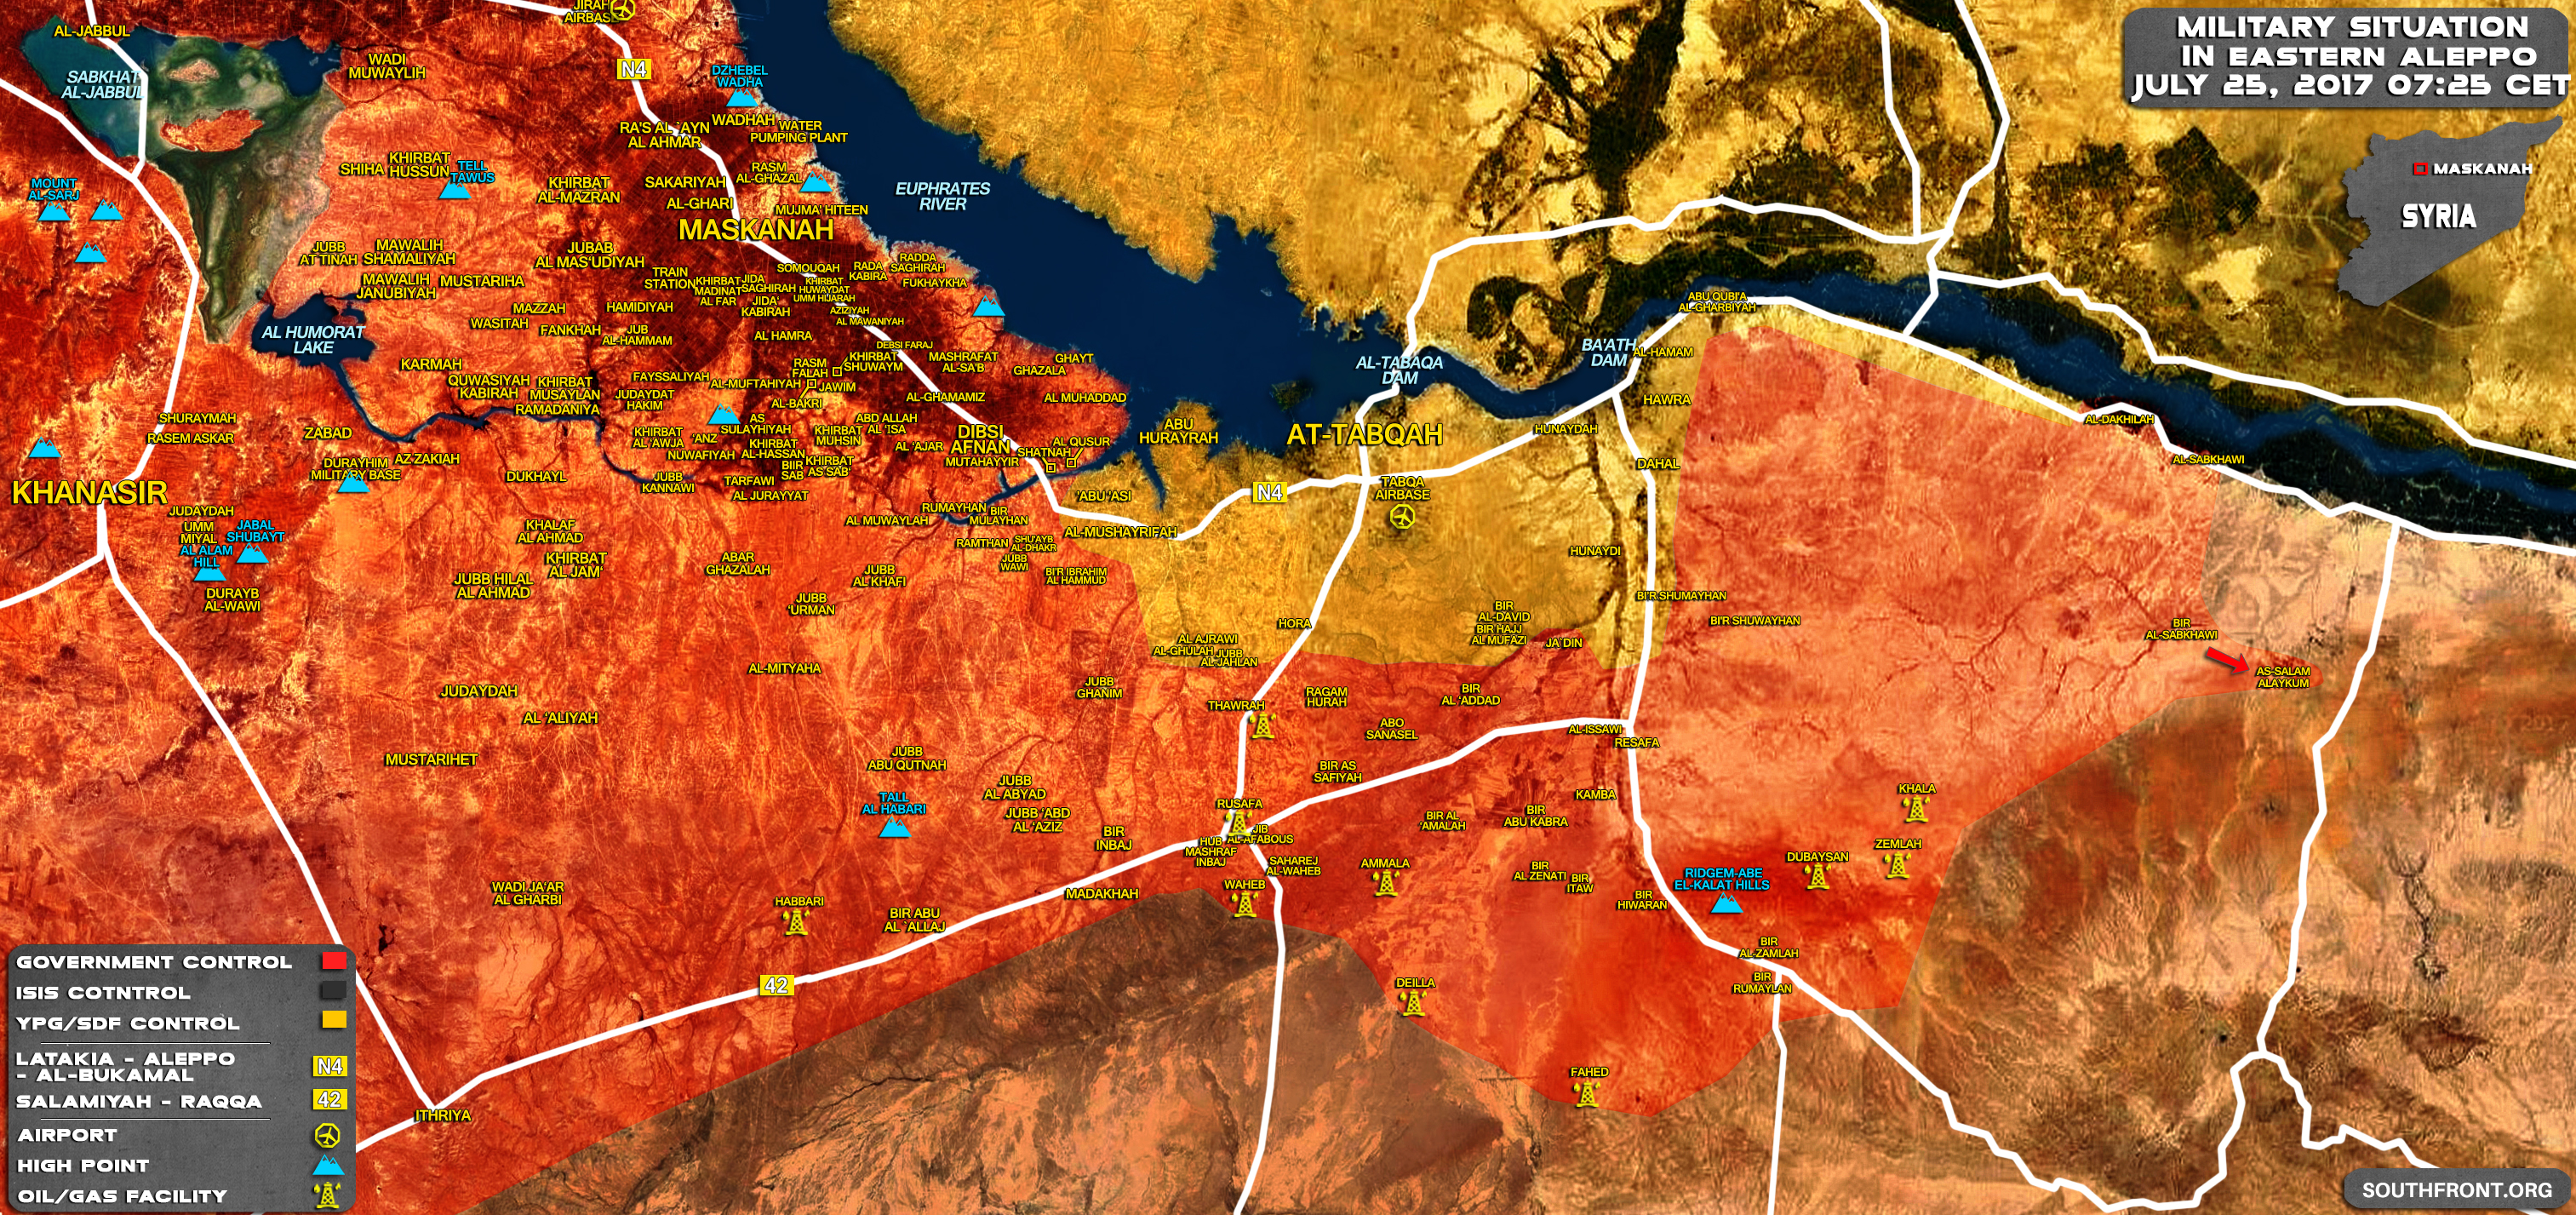 Syrian War: News #14 - Page 22 25july_Eastern-Aleppo_Syria_War_Map-Recovered